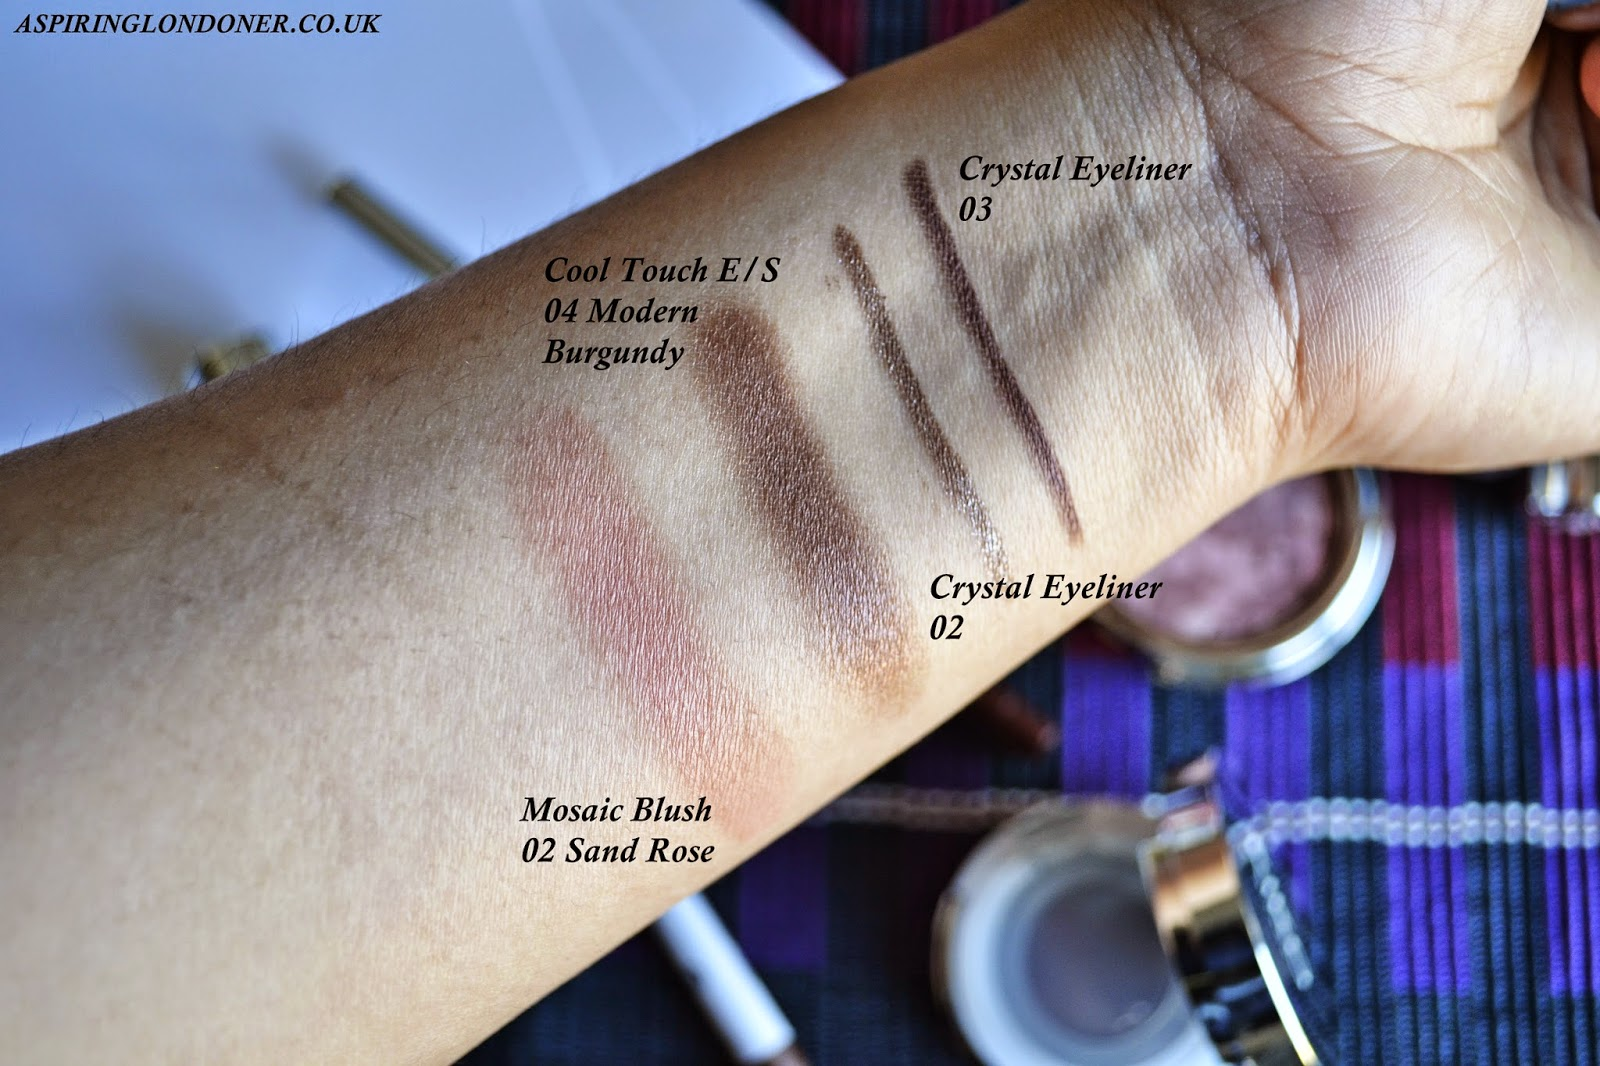 Kiko Cosmetics Mosaic Blush Sand Rose and Cool Touch Eyeshadow 05 Modern Burgundy Swatch - Aspiring Londoner